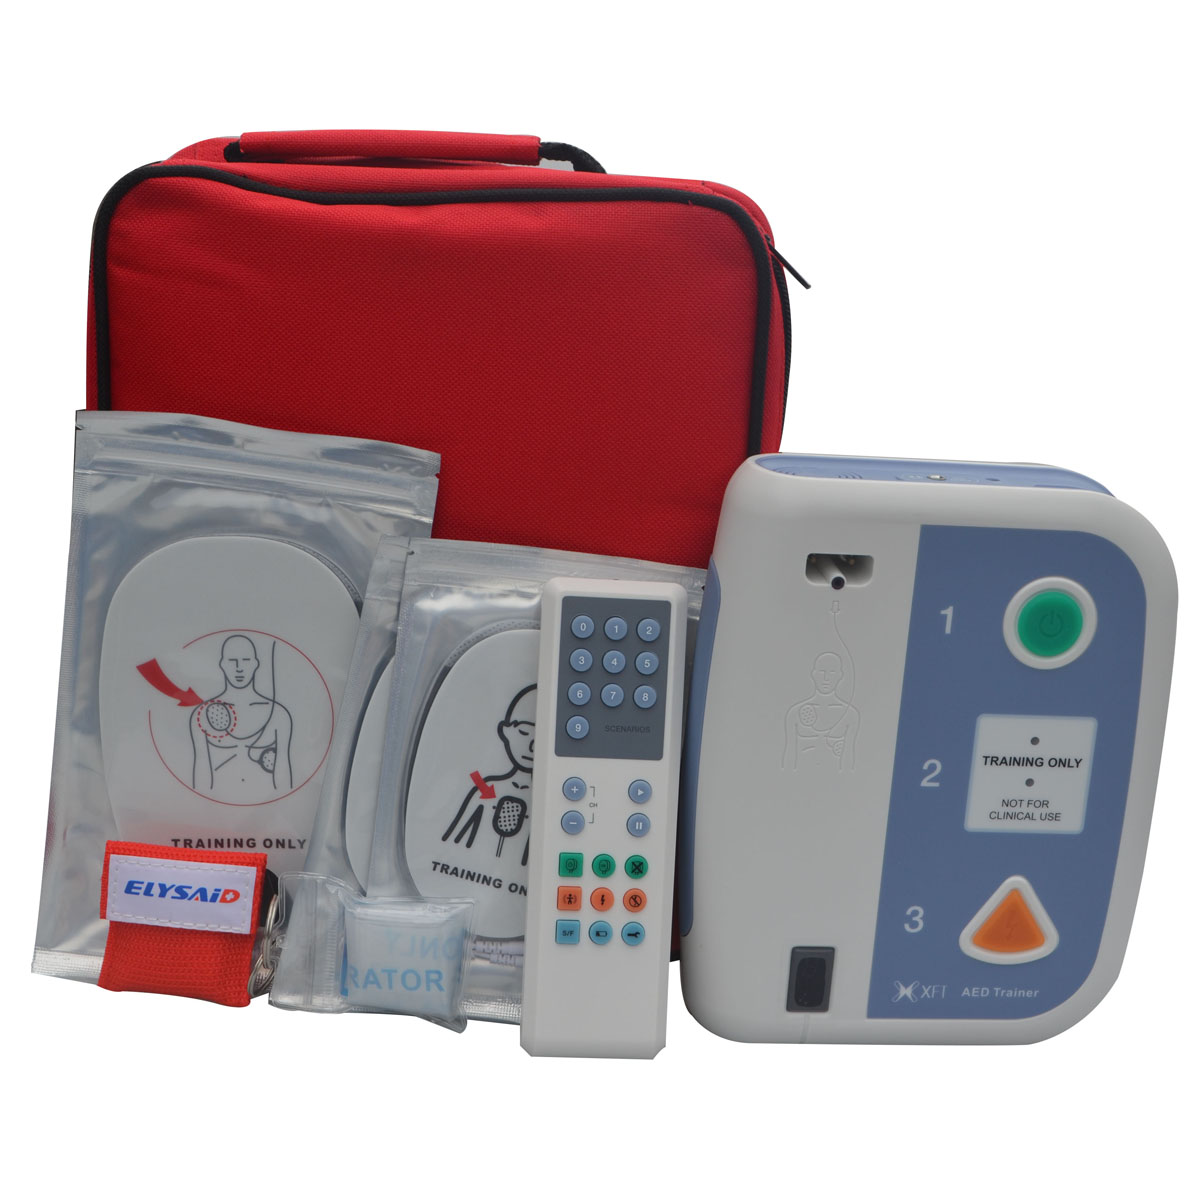 1set Automated External Defibrillator 2pcs CPR Mask Emergency AED Training Machine For First Aid In Polish